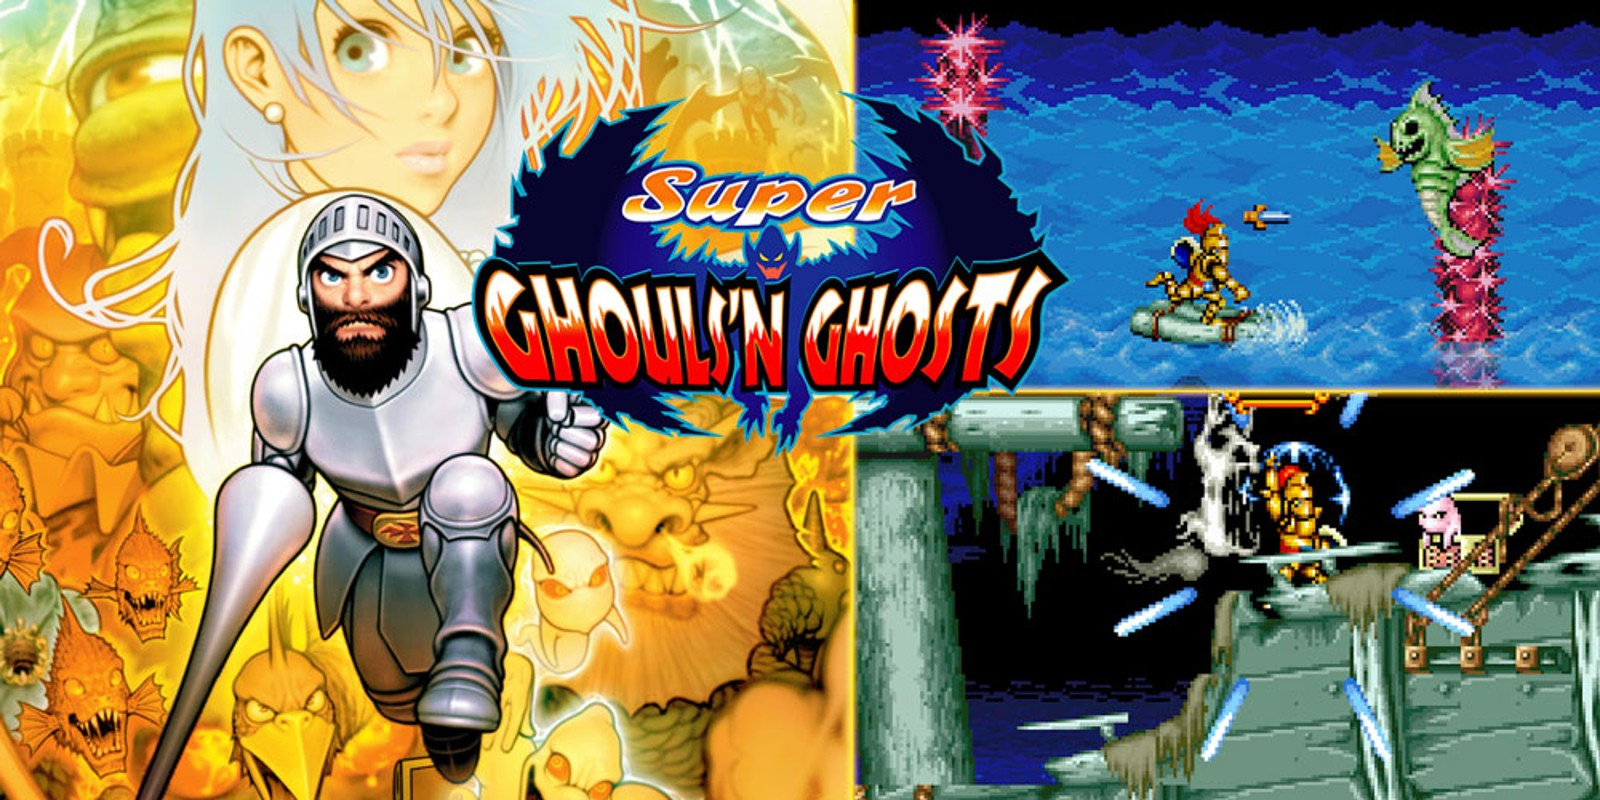 super ghouls and ghosts gba rom